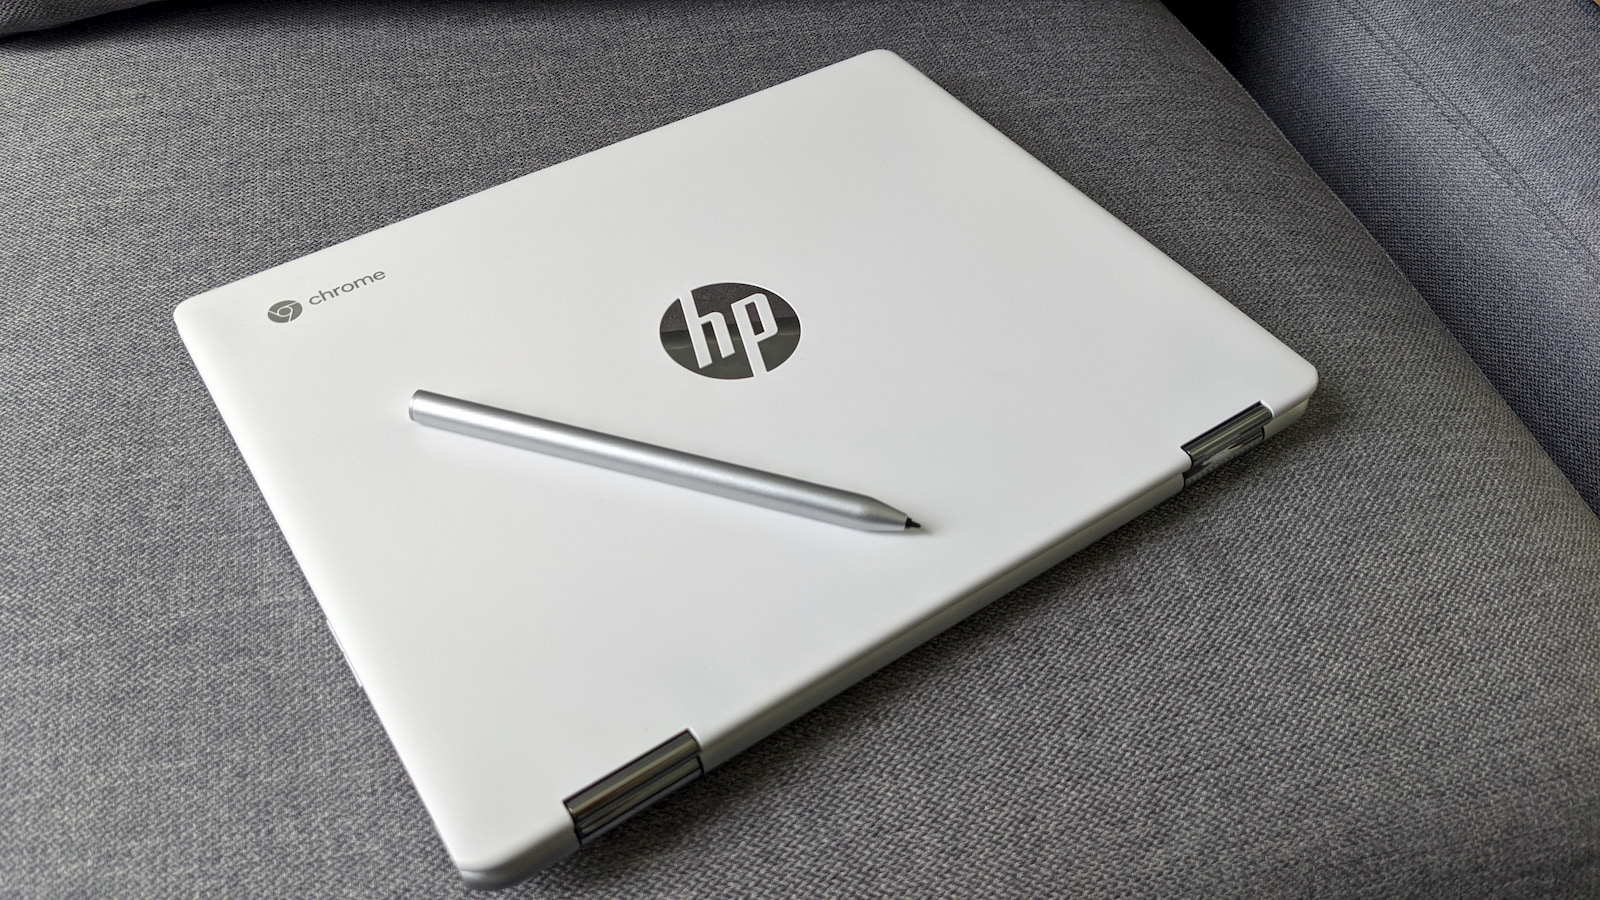 Chromebooks will soon report stylus battery levels